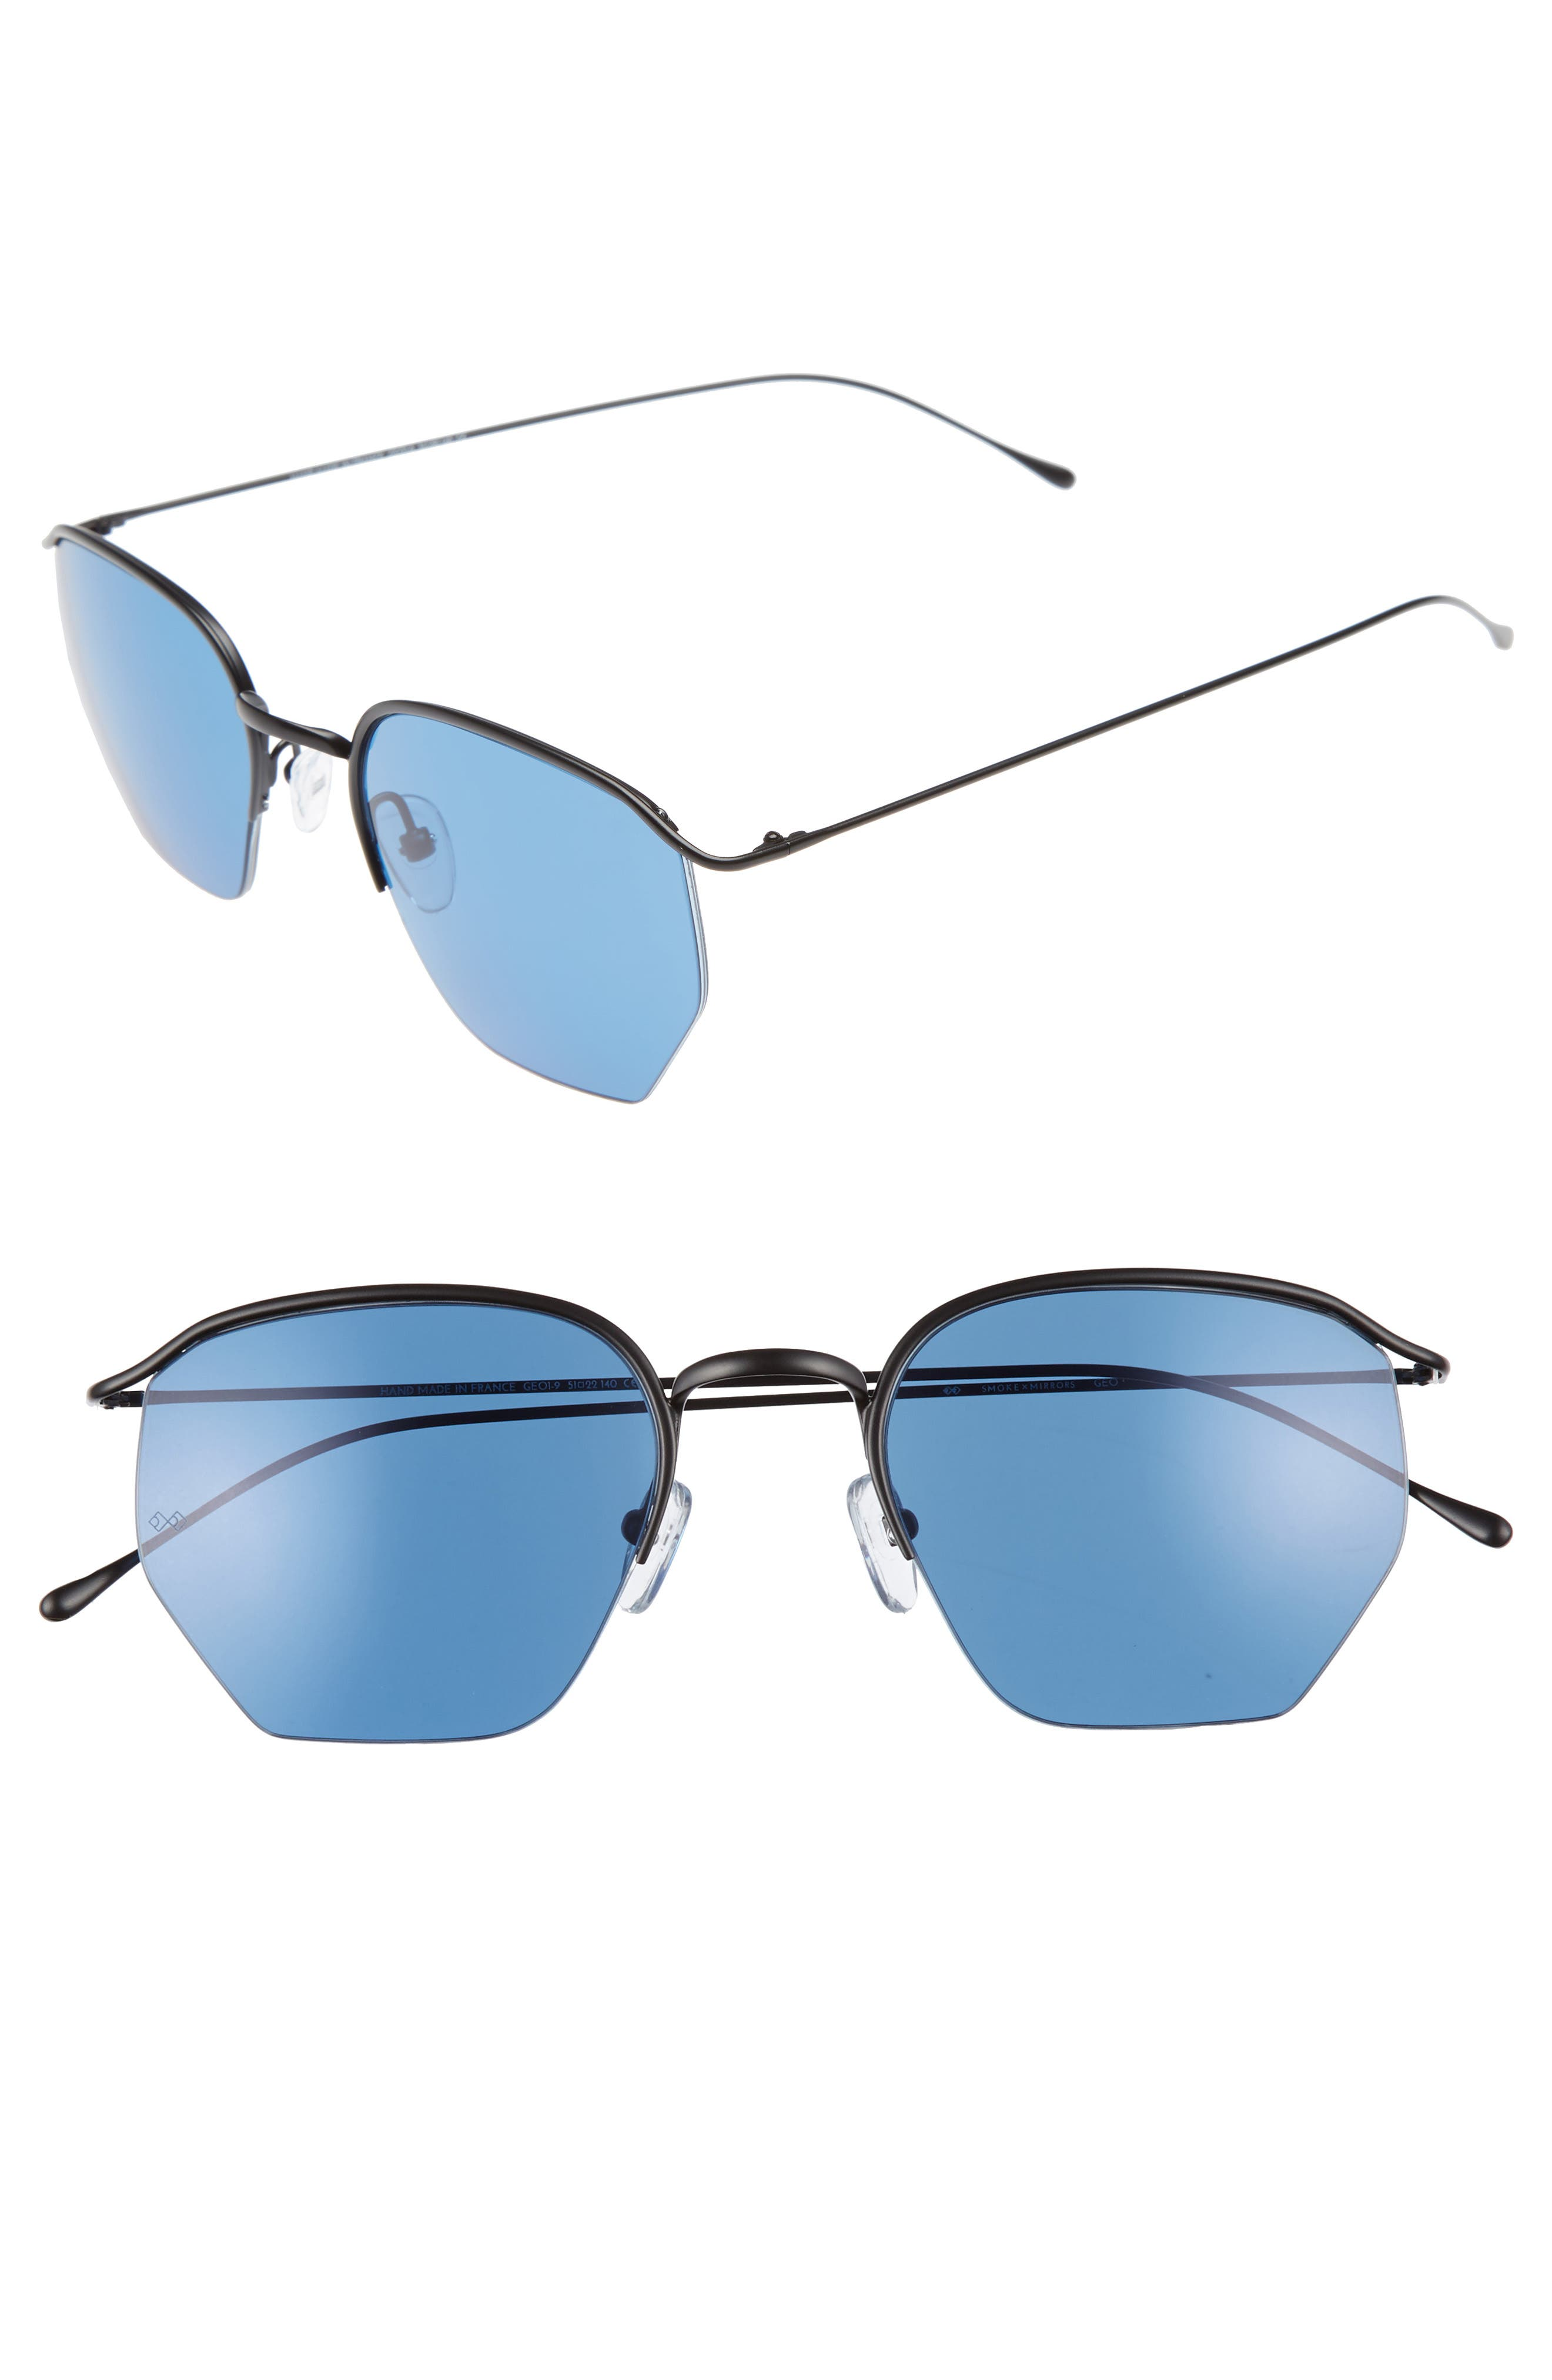 SMOKE X MIRRORS, Geo 1 50mm Aviator Sunglasses, Main thumbnail 1, color, MATTE BLACK/ GRADIENT BLUE